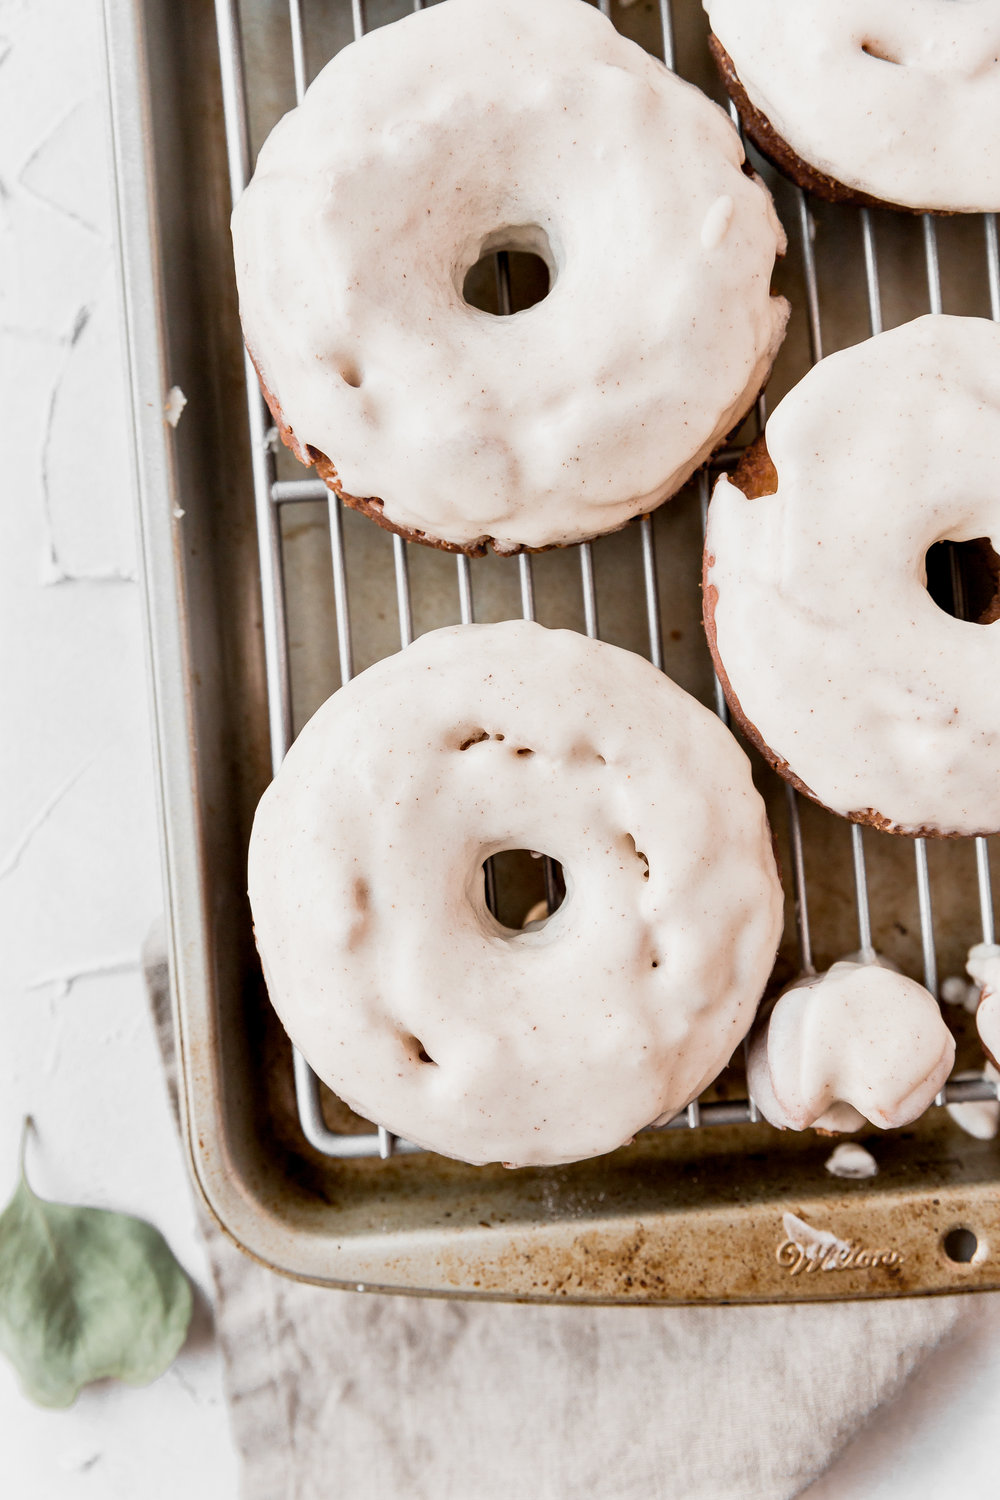 Brown Butter Old Fashioned Sour Cream Donuts || To Salt & See-1.jpg